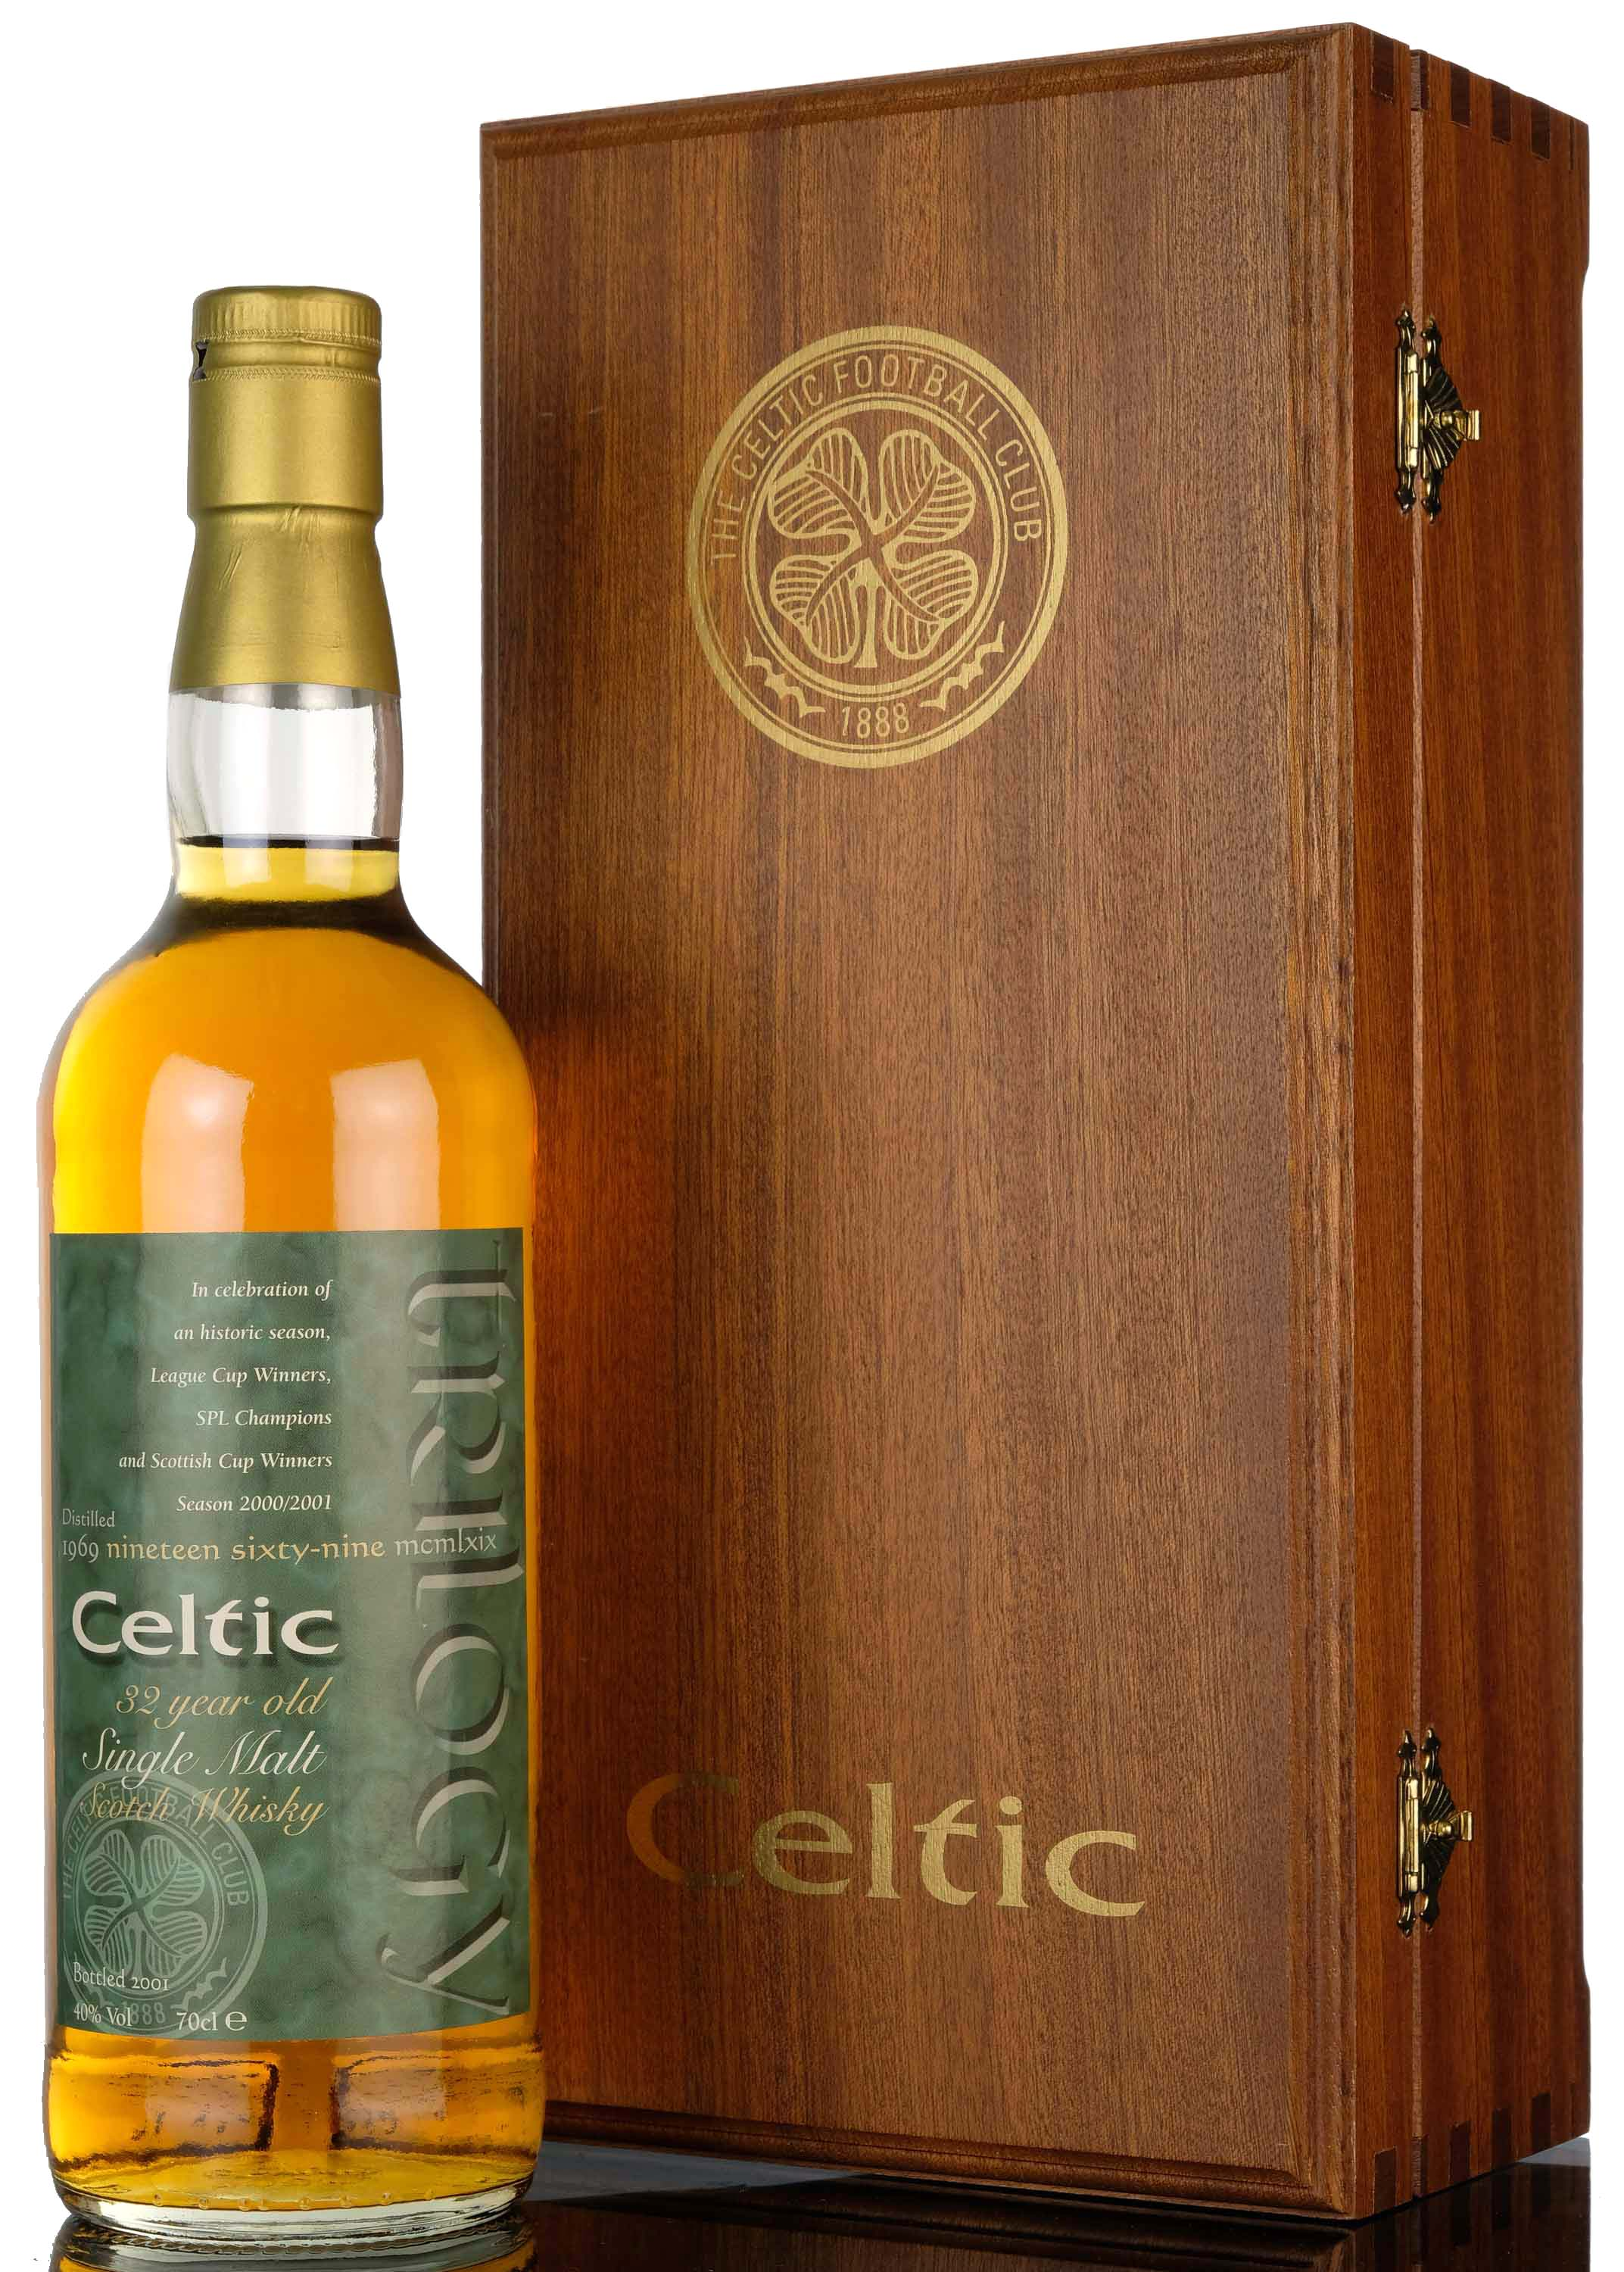 celtic trilogy 1969-2001 - 32 year old